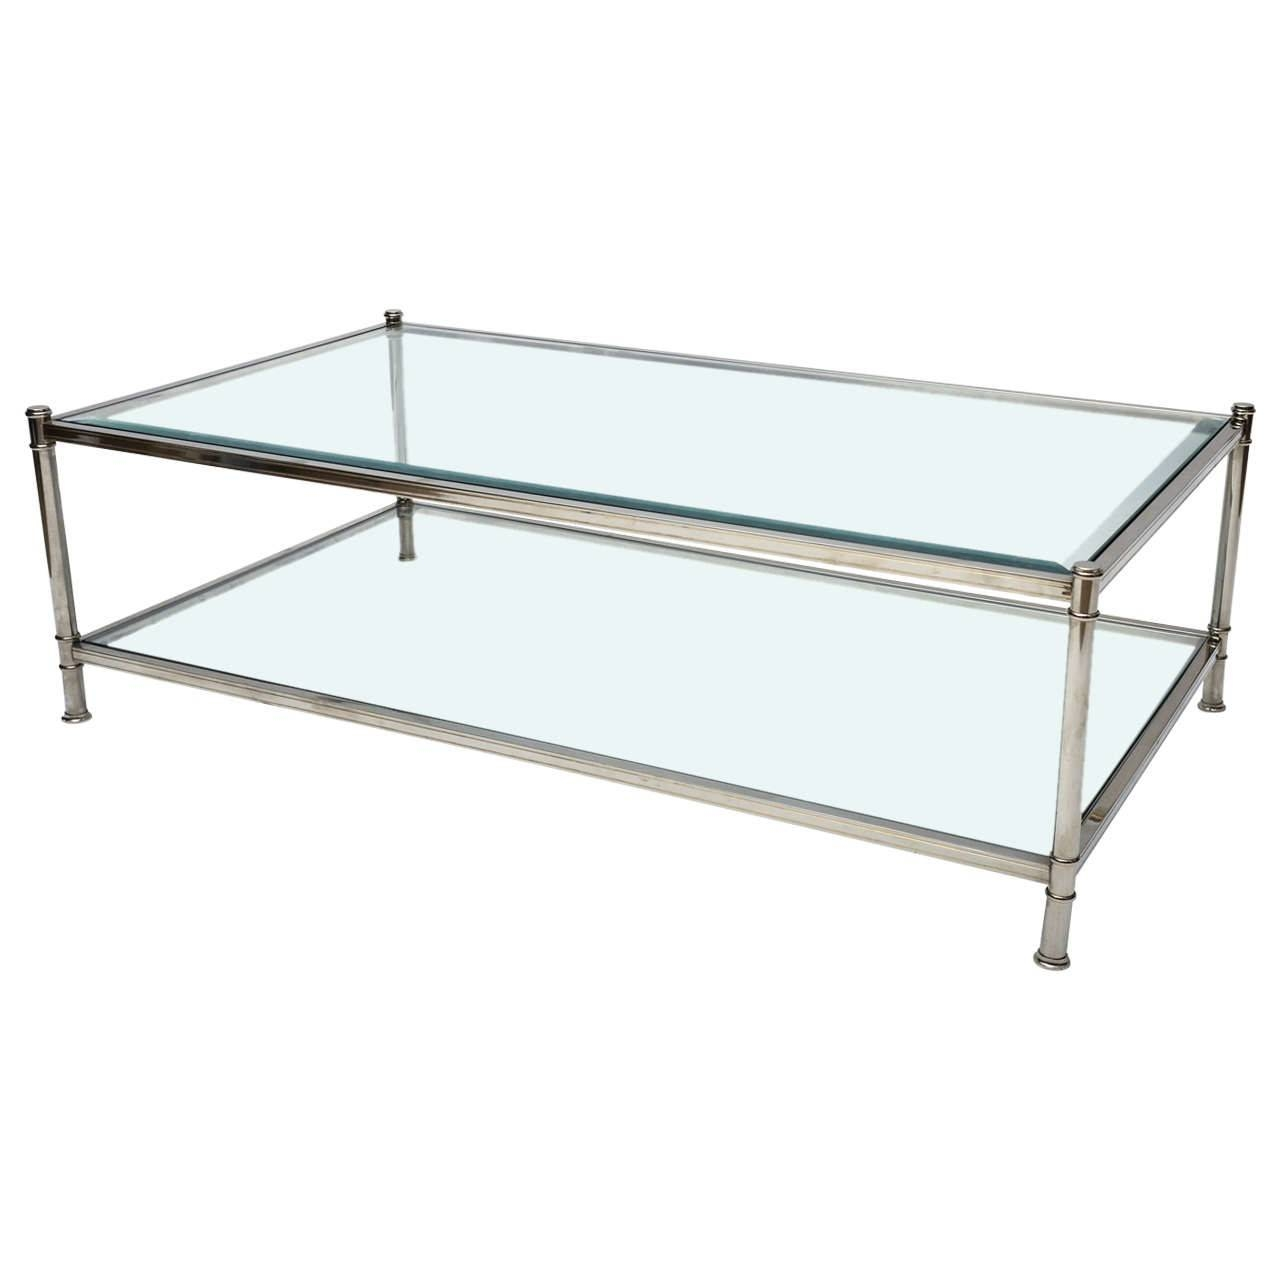 Furniture. Chrome And Glass Coffee Table Design Ideas: Clear with regard to Rectangle Glass Chrome Coffee Tables (Image 23 of 30)